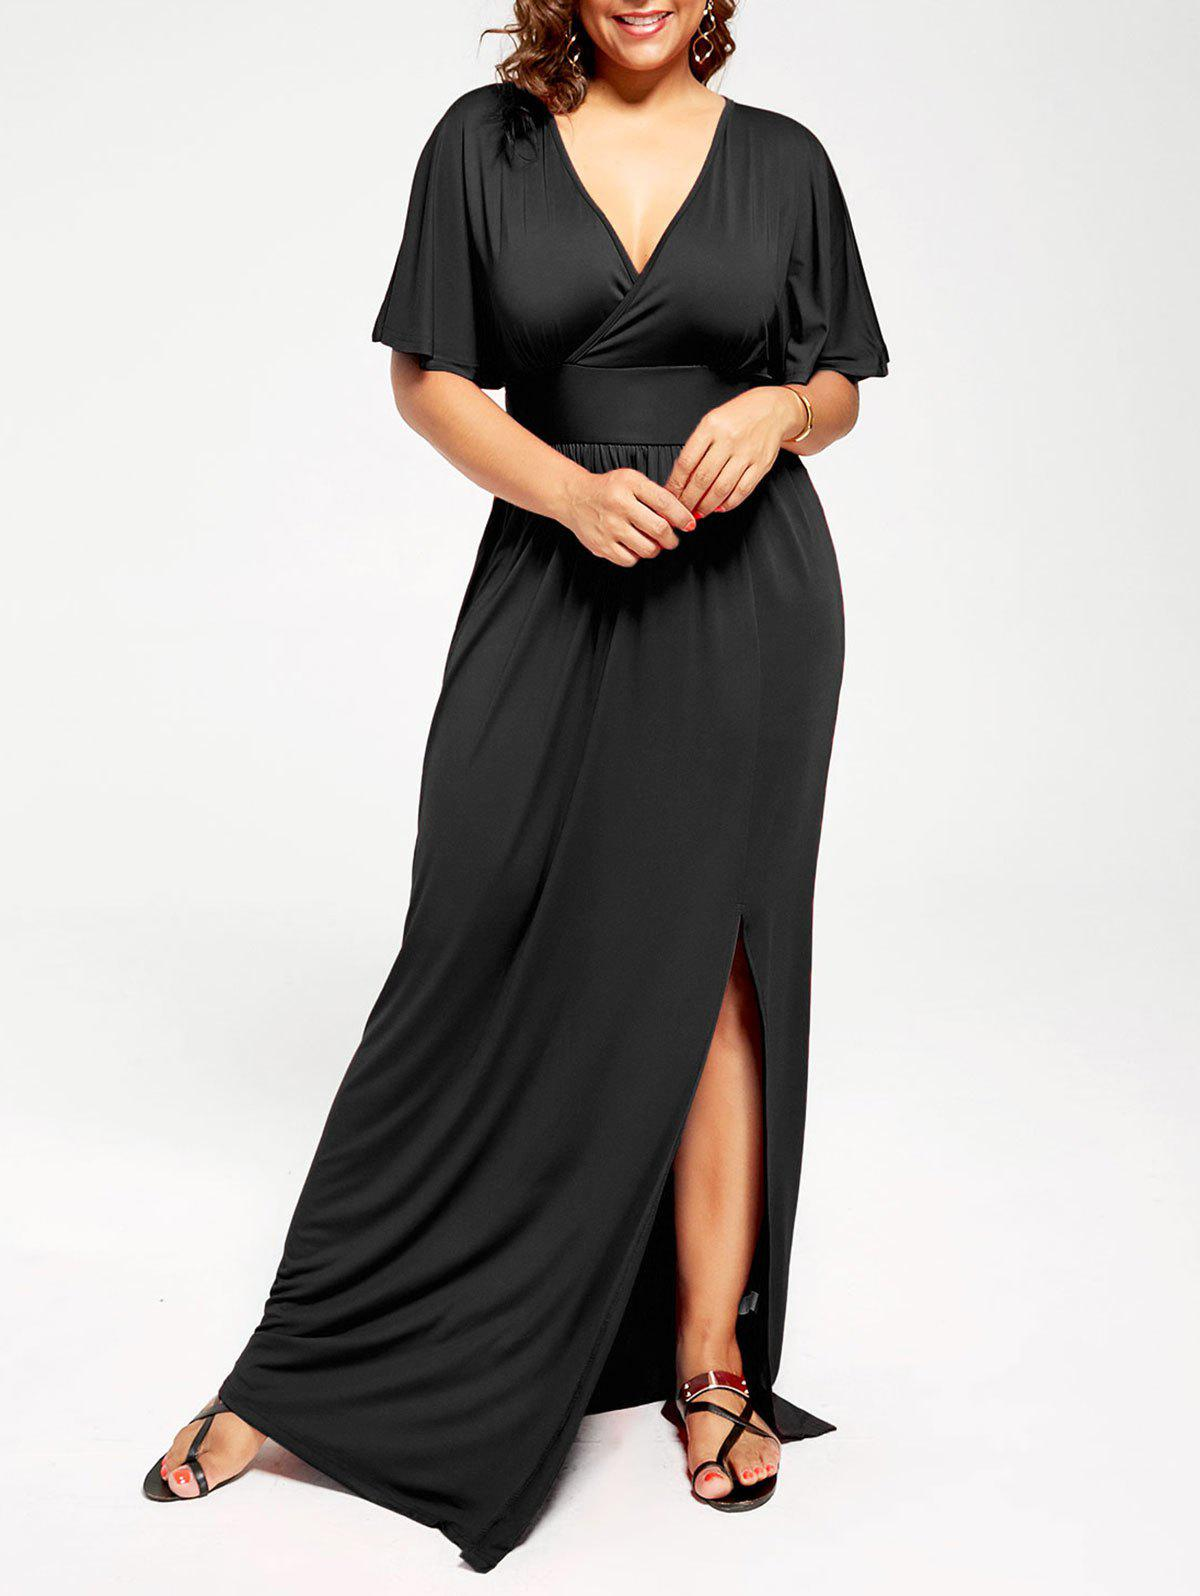 Plus Size Plunge Slit Maxi Empire Waist Formal DressWOMEN<br><br>Size: 2XL; Color: BLACK; Style: Brief; Material: Cotton Blend,Polyester; Silhouette: Ball Gown; Dresses Length: Floor-Length; Neckline: Plunging Neck; Sleeve Type: Butterfly Sleeve; Sleeve Length: Short Sleeves; Waist: High Waisted; Embellishment: Ruched,Ruffles; Pattern Type: Solid Color; With Belt: No; Season: Spring,Summer; Weight: 0.4500kg; Package Contents: 1 x Dress;